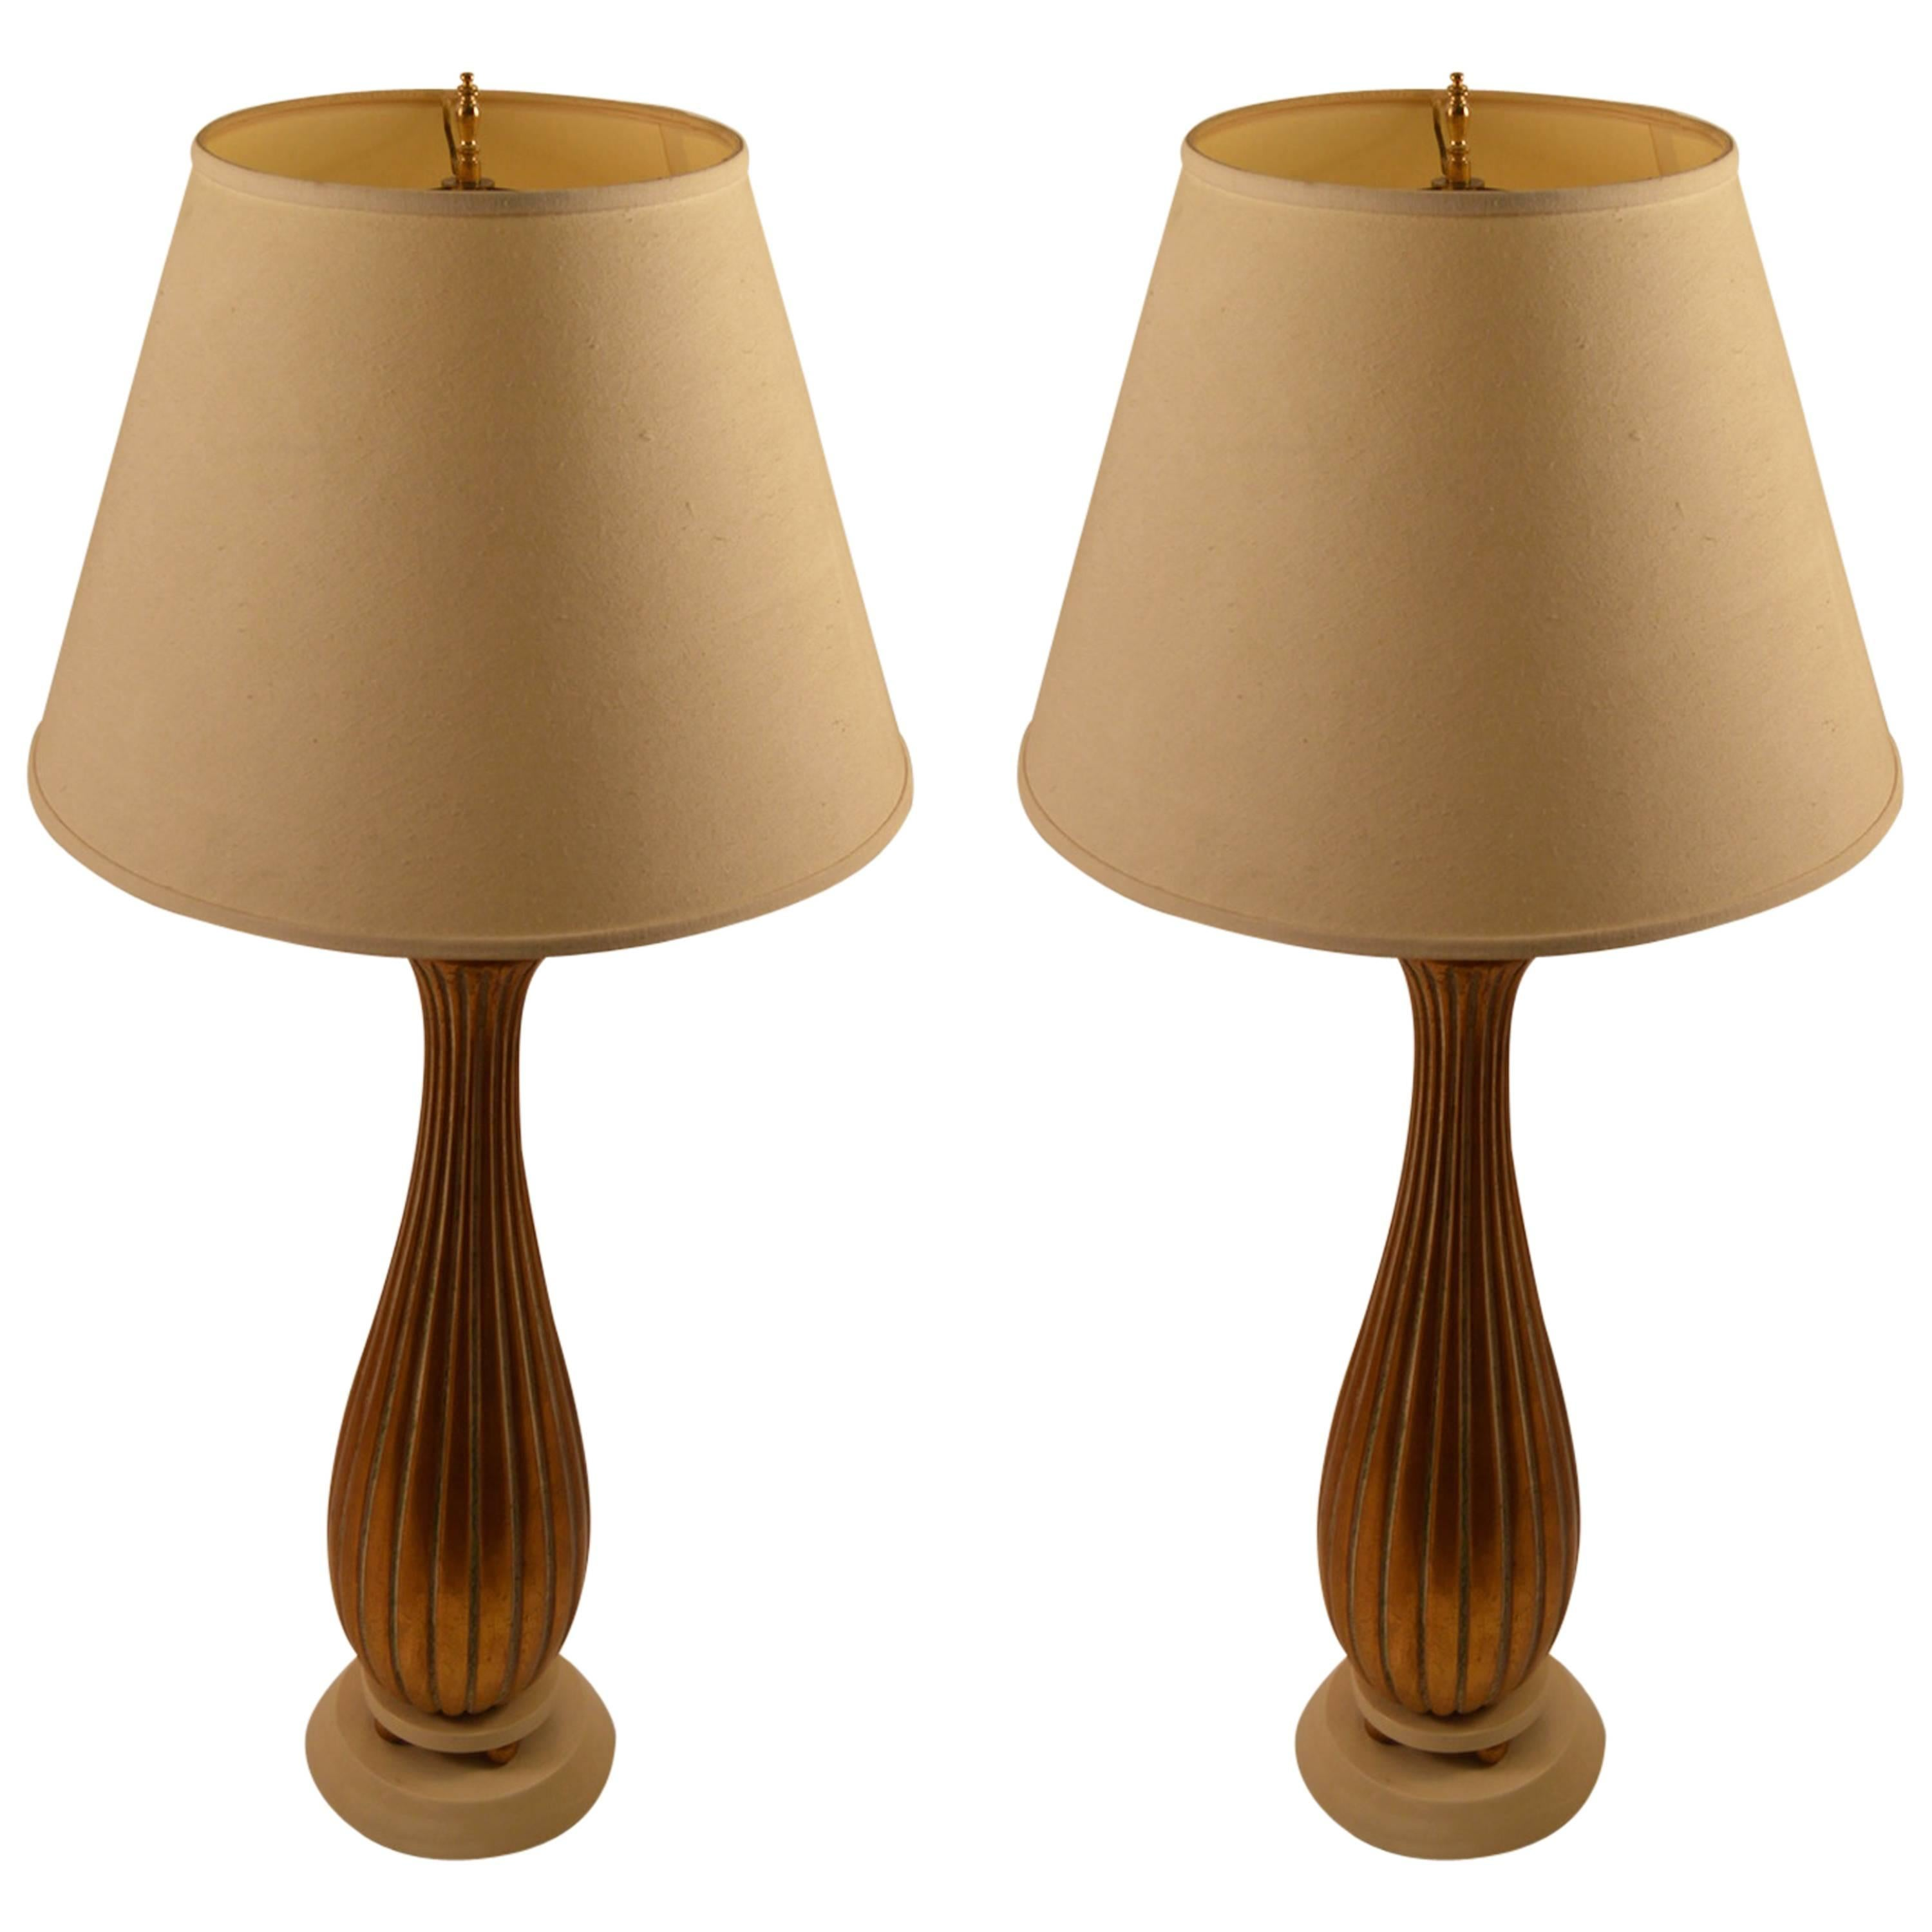 Pair of Reeded Giltwood Table Lamps